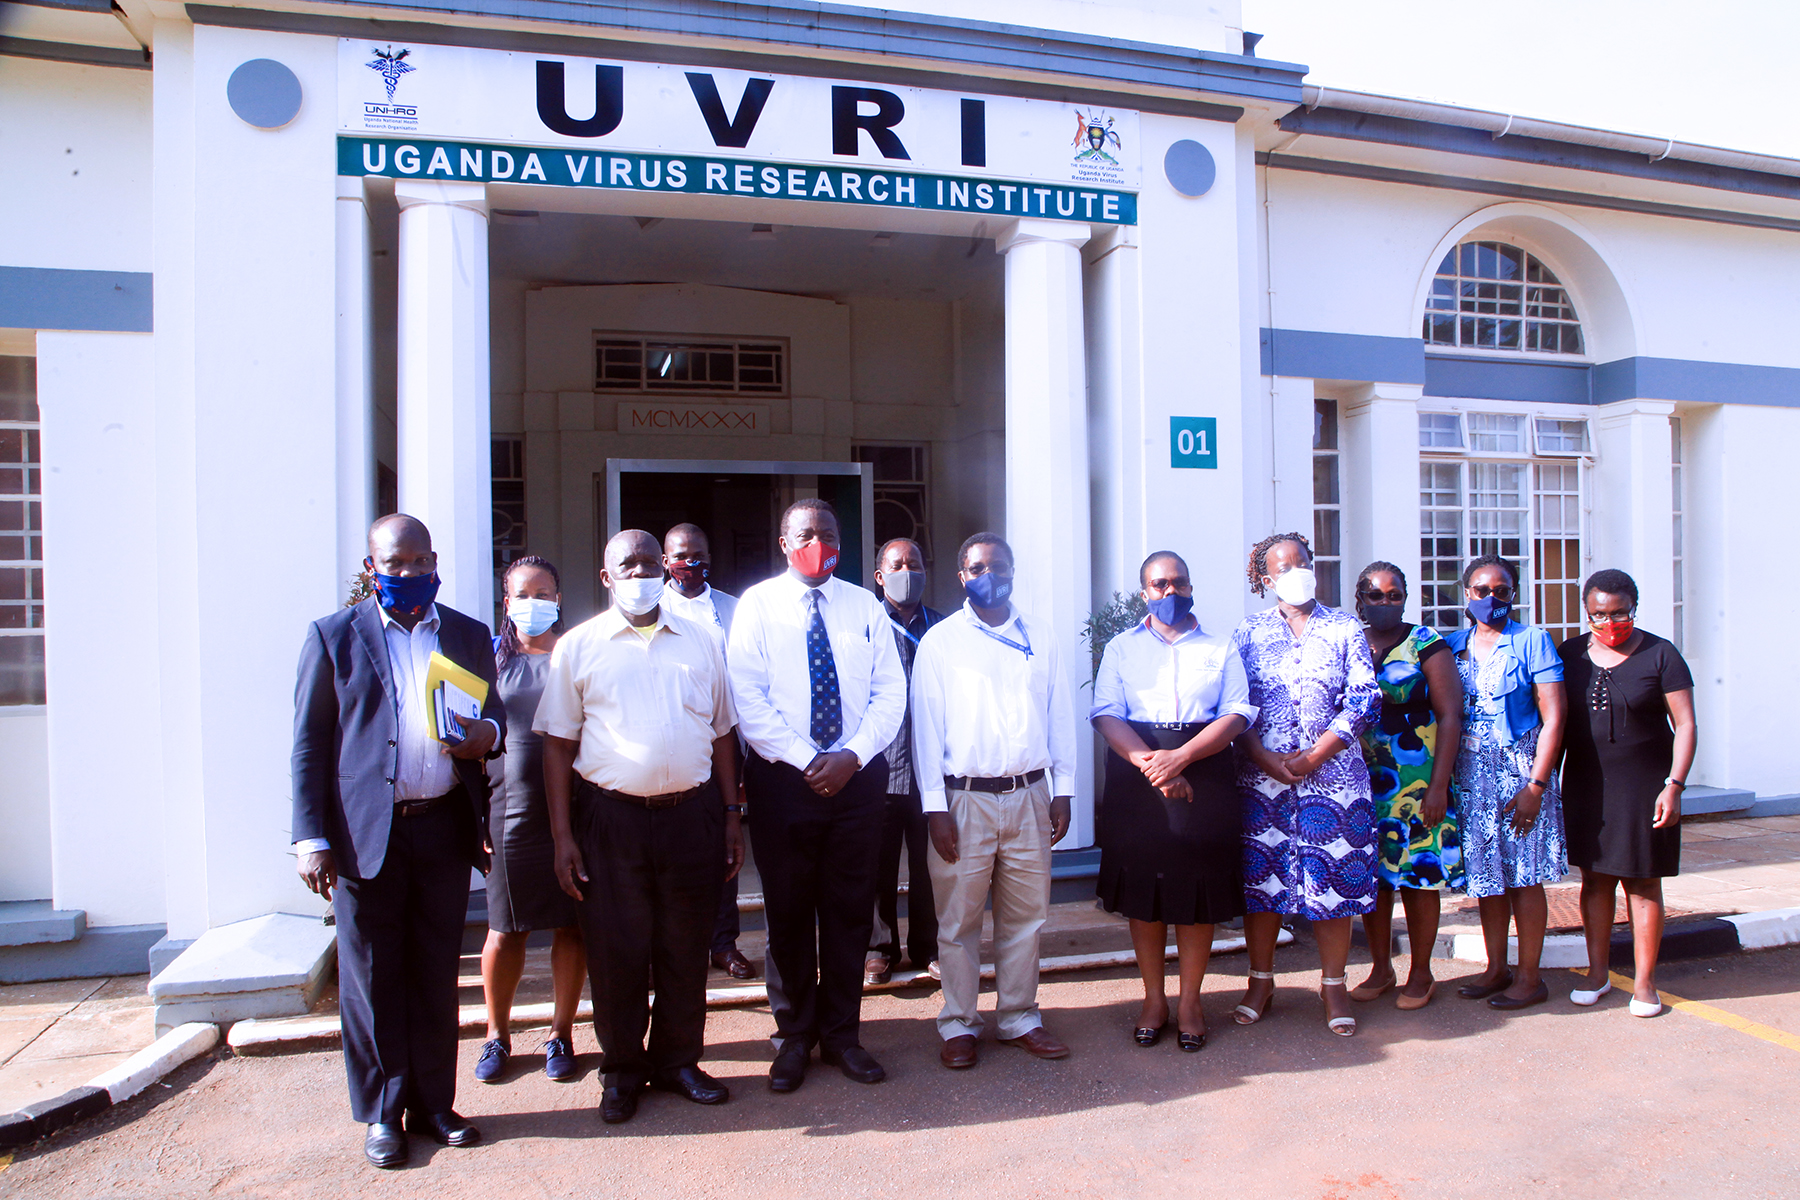 Hon. Minister Wilson Muruli Mukasa in Group Photograph UVRI staff anf Ministry Technical staff on Friday 18th Sept. 2020